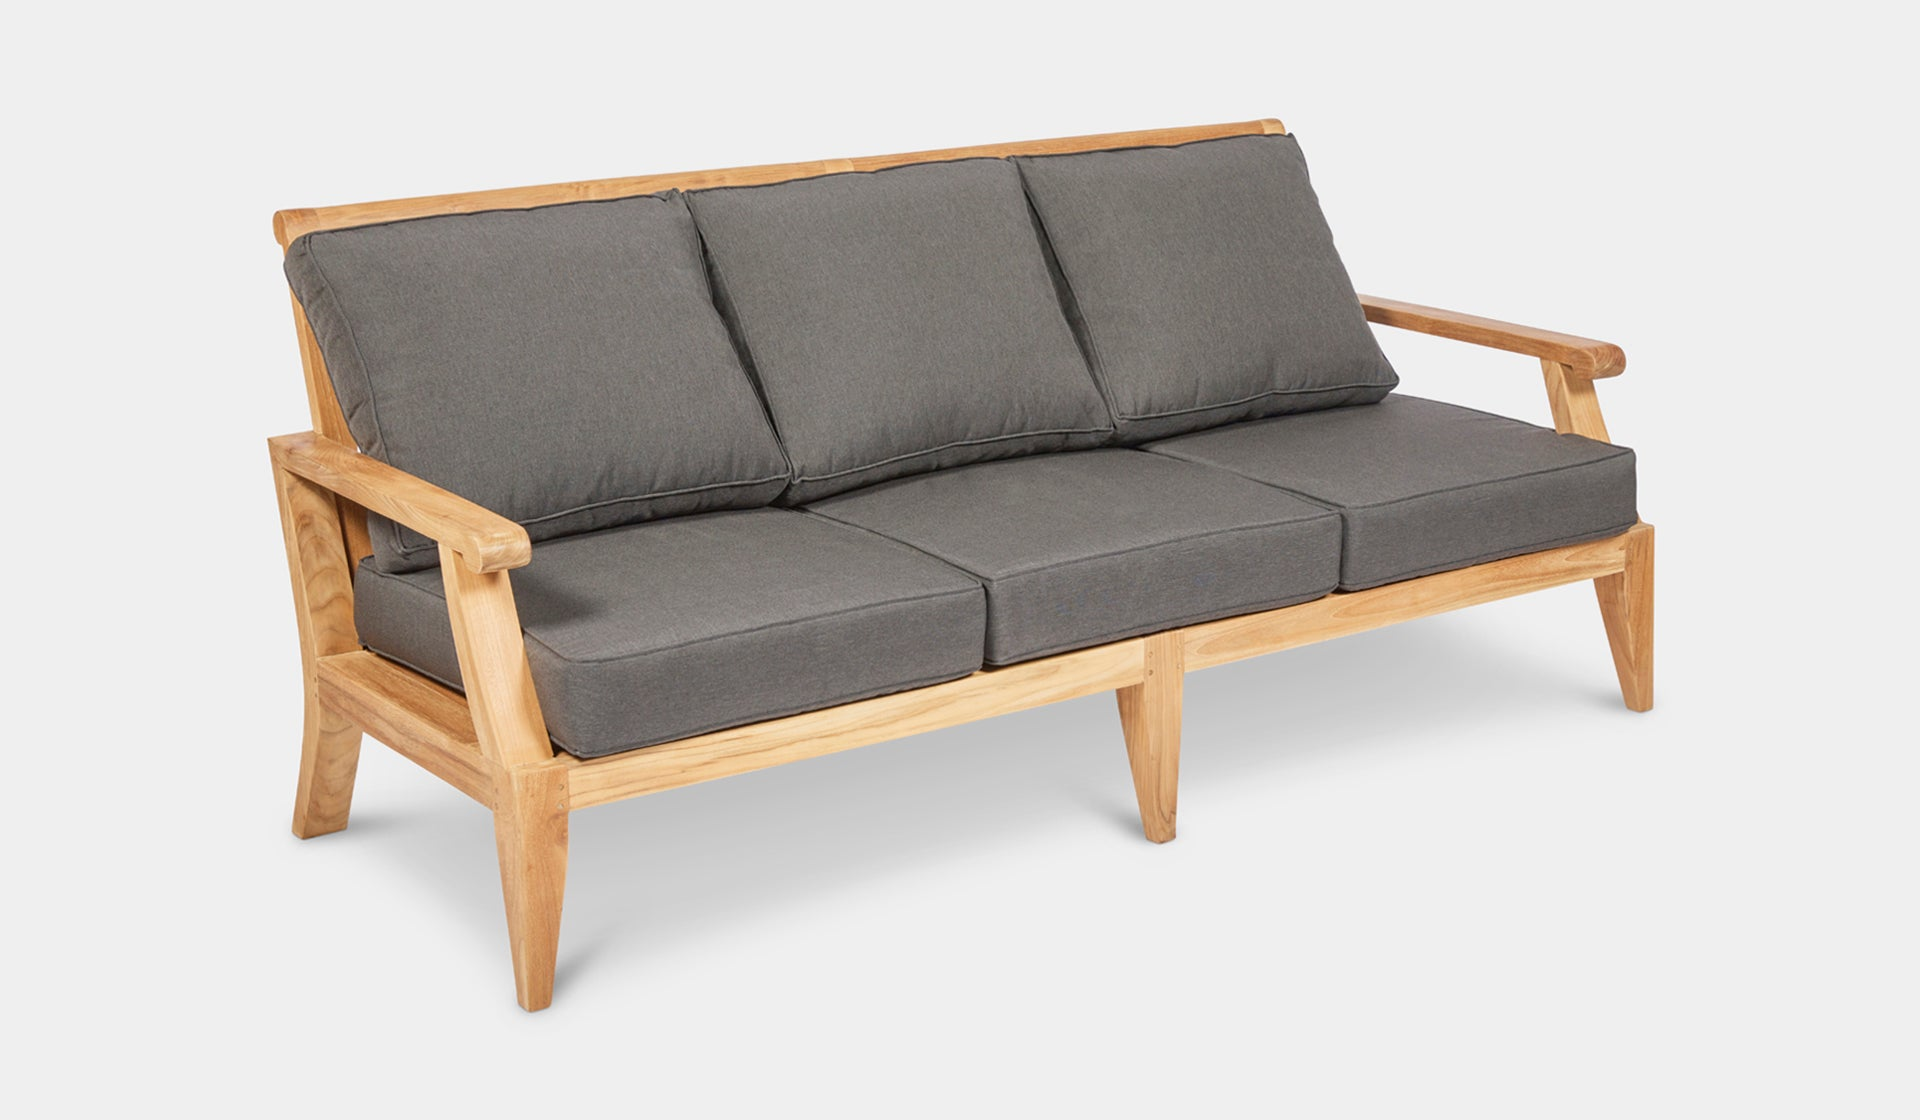 Teak-Outdoor-Lounge-Juliet-3Seater-r7